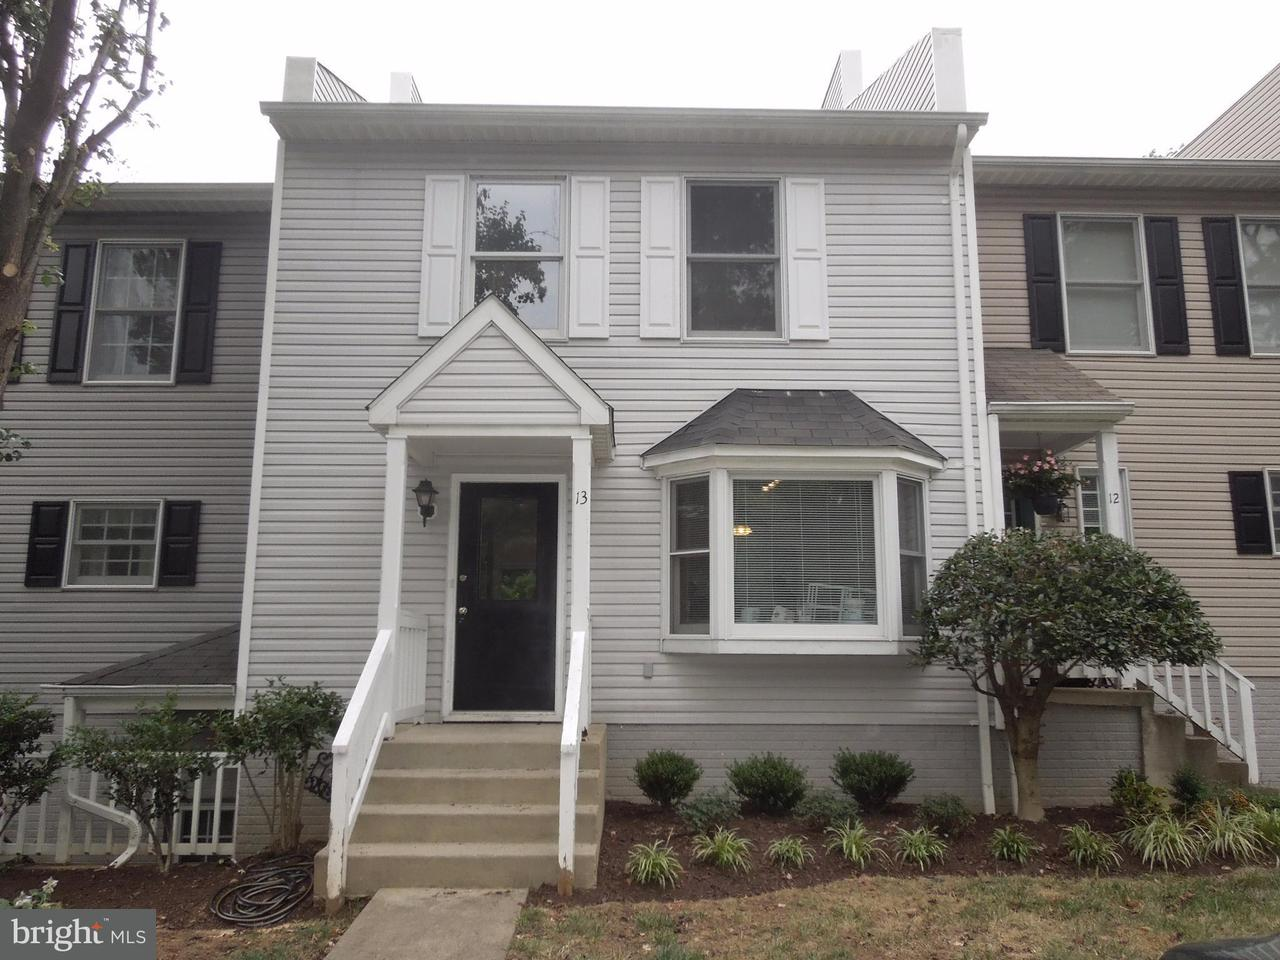 Other Residential for Rent at 13 Stonewall Ct #13 Middleburg, Virginia 20117 United States